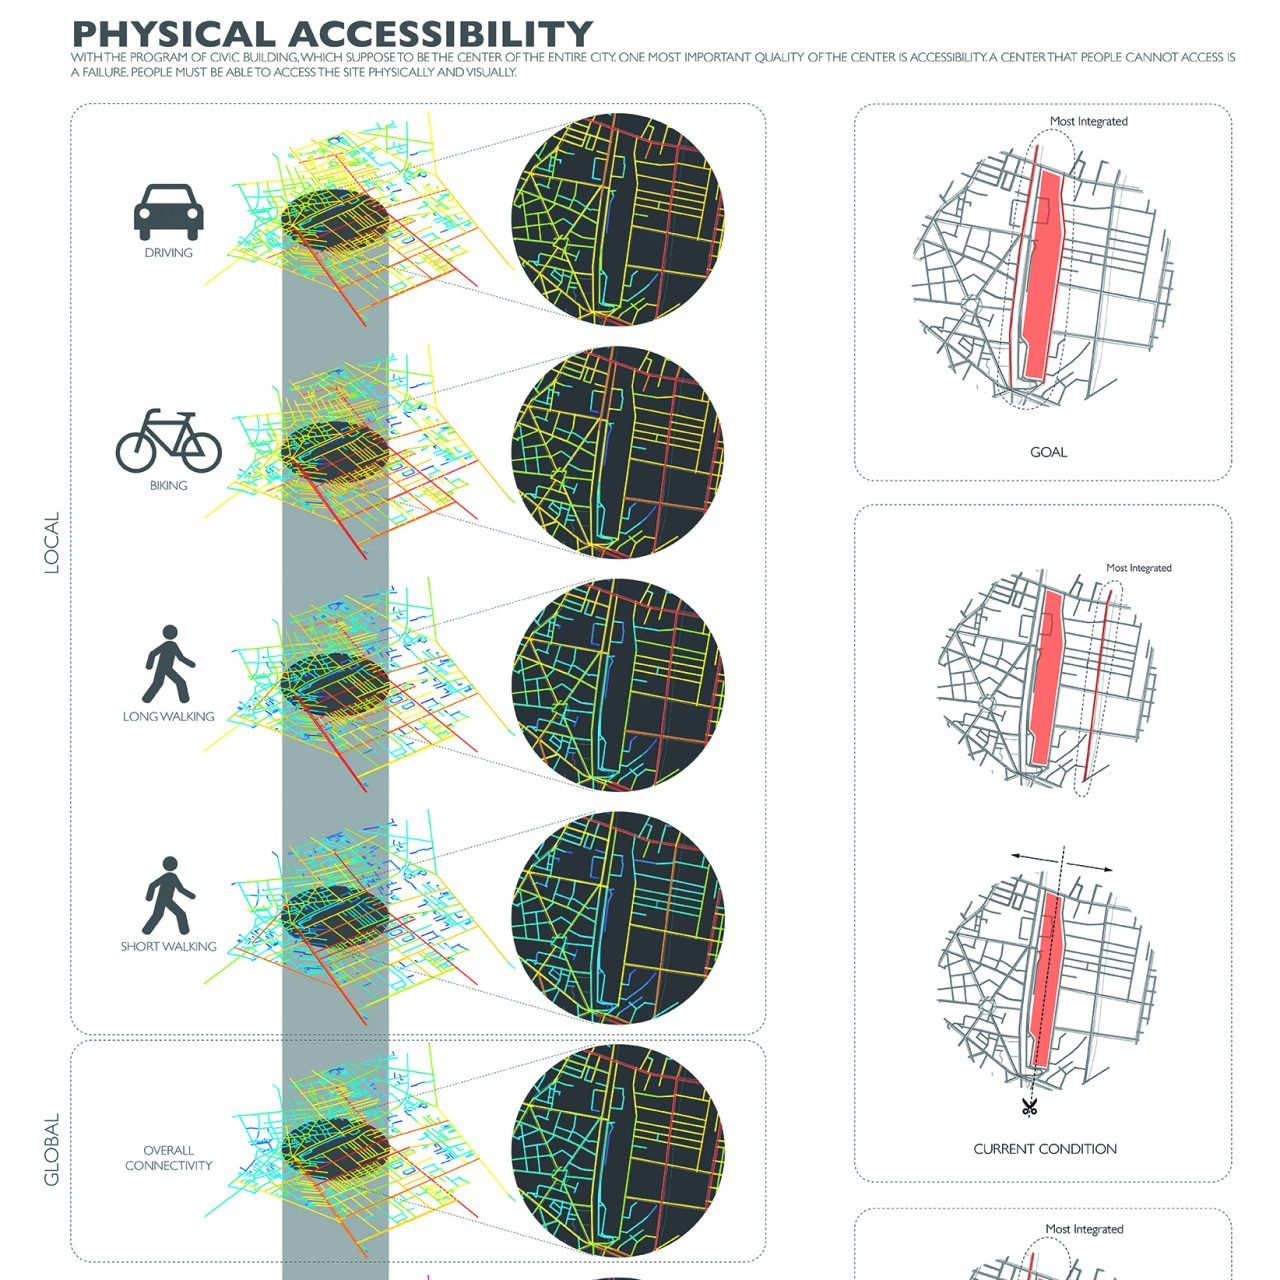 Analysis of accessibility by transit modes